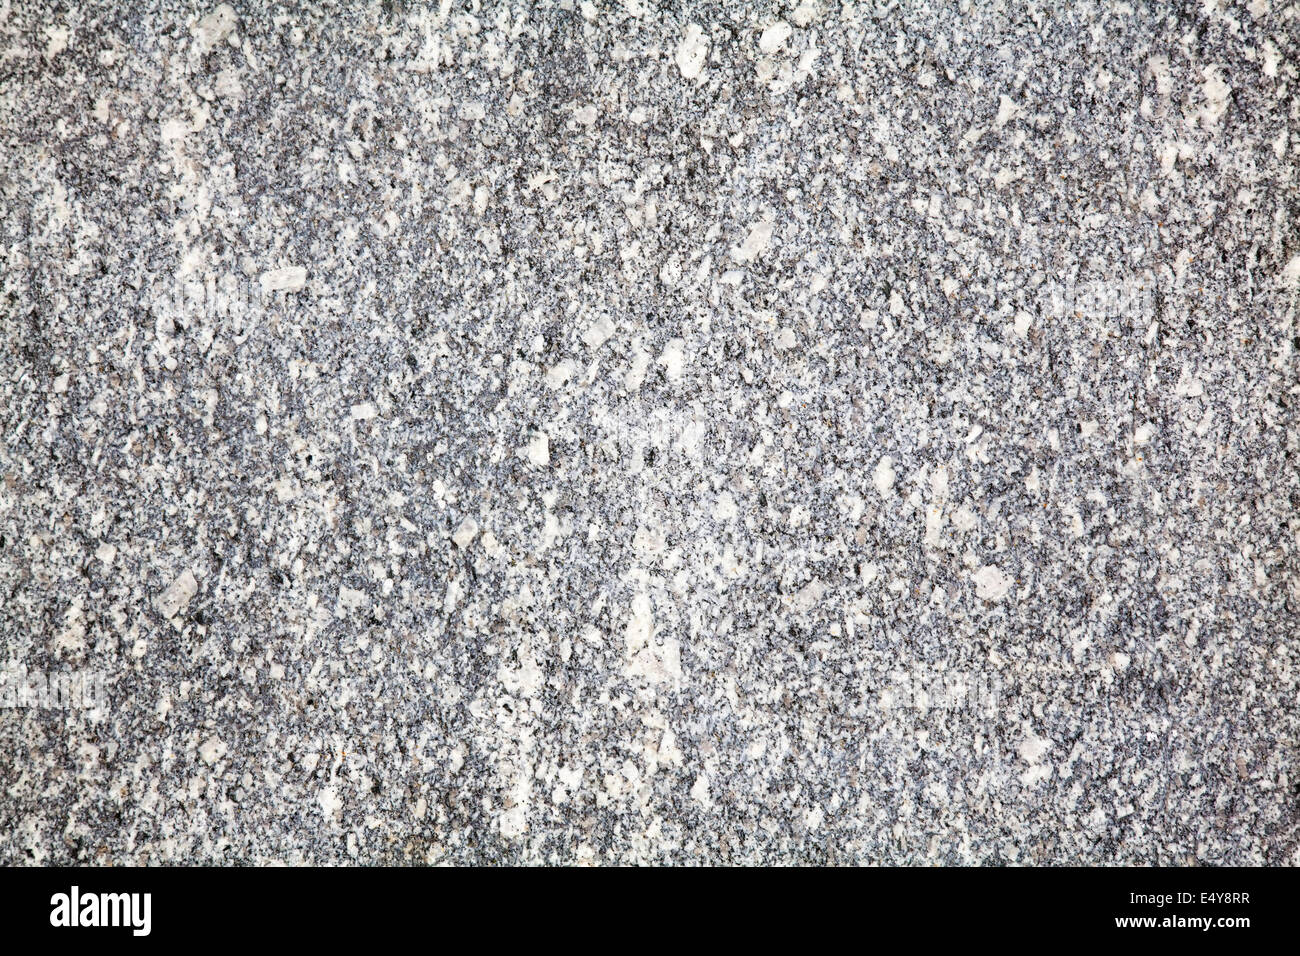 Grey marble grained texture close up - Stock Image